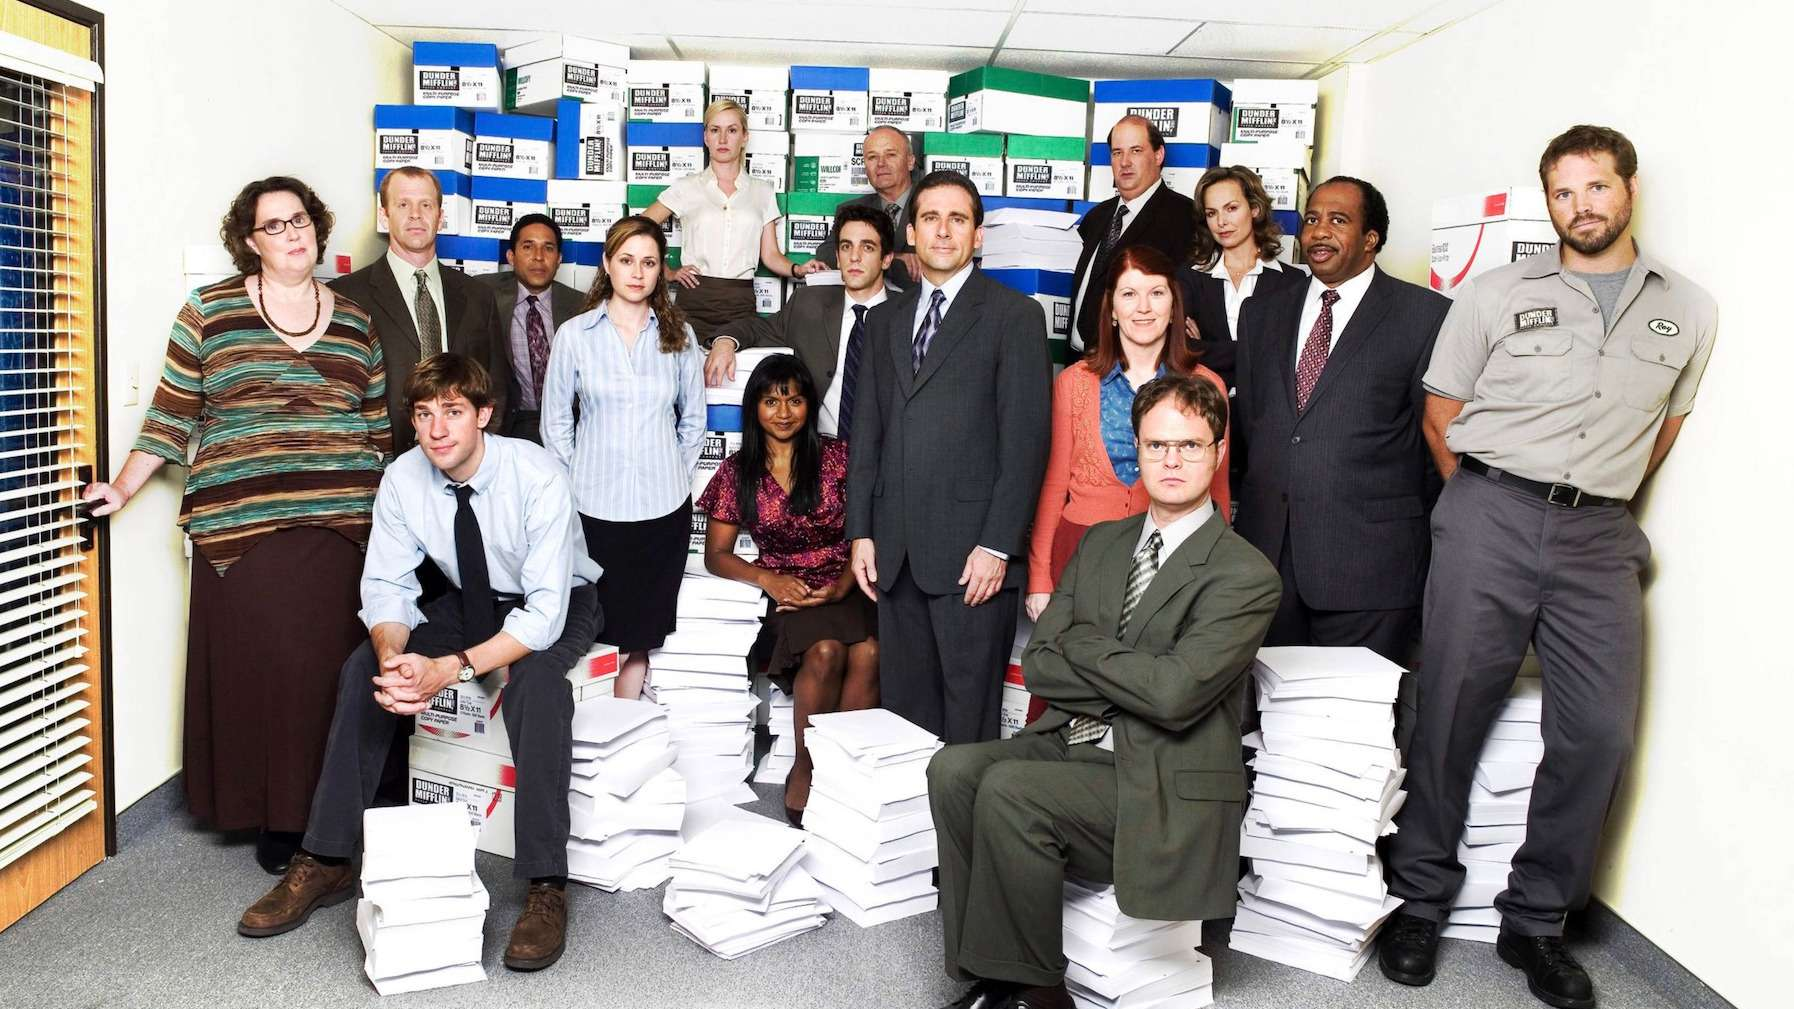 How to watch The Office US on Netflix in the UK